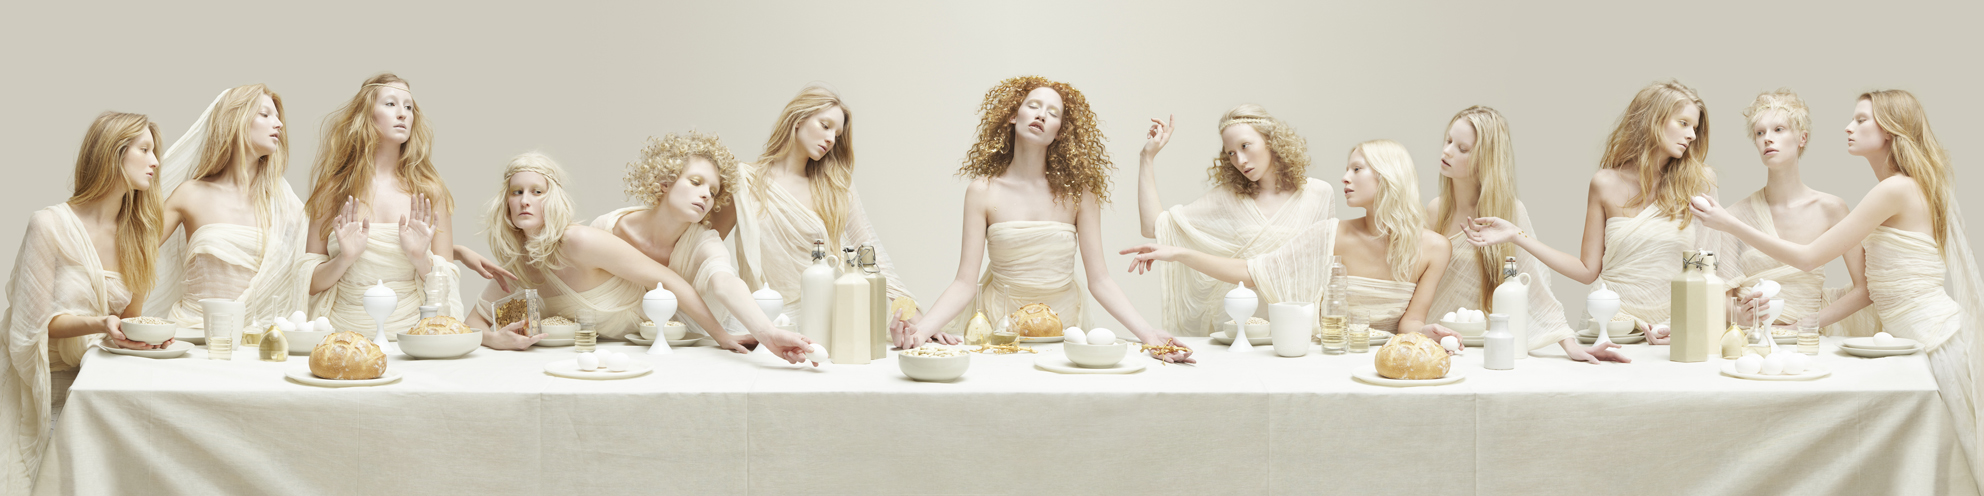 BLOND LAST SUPPER